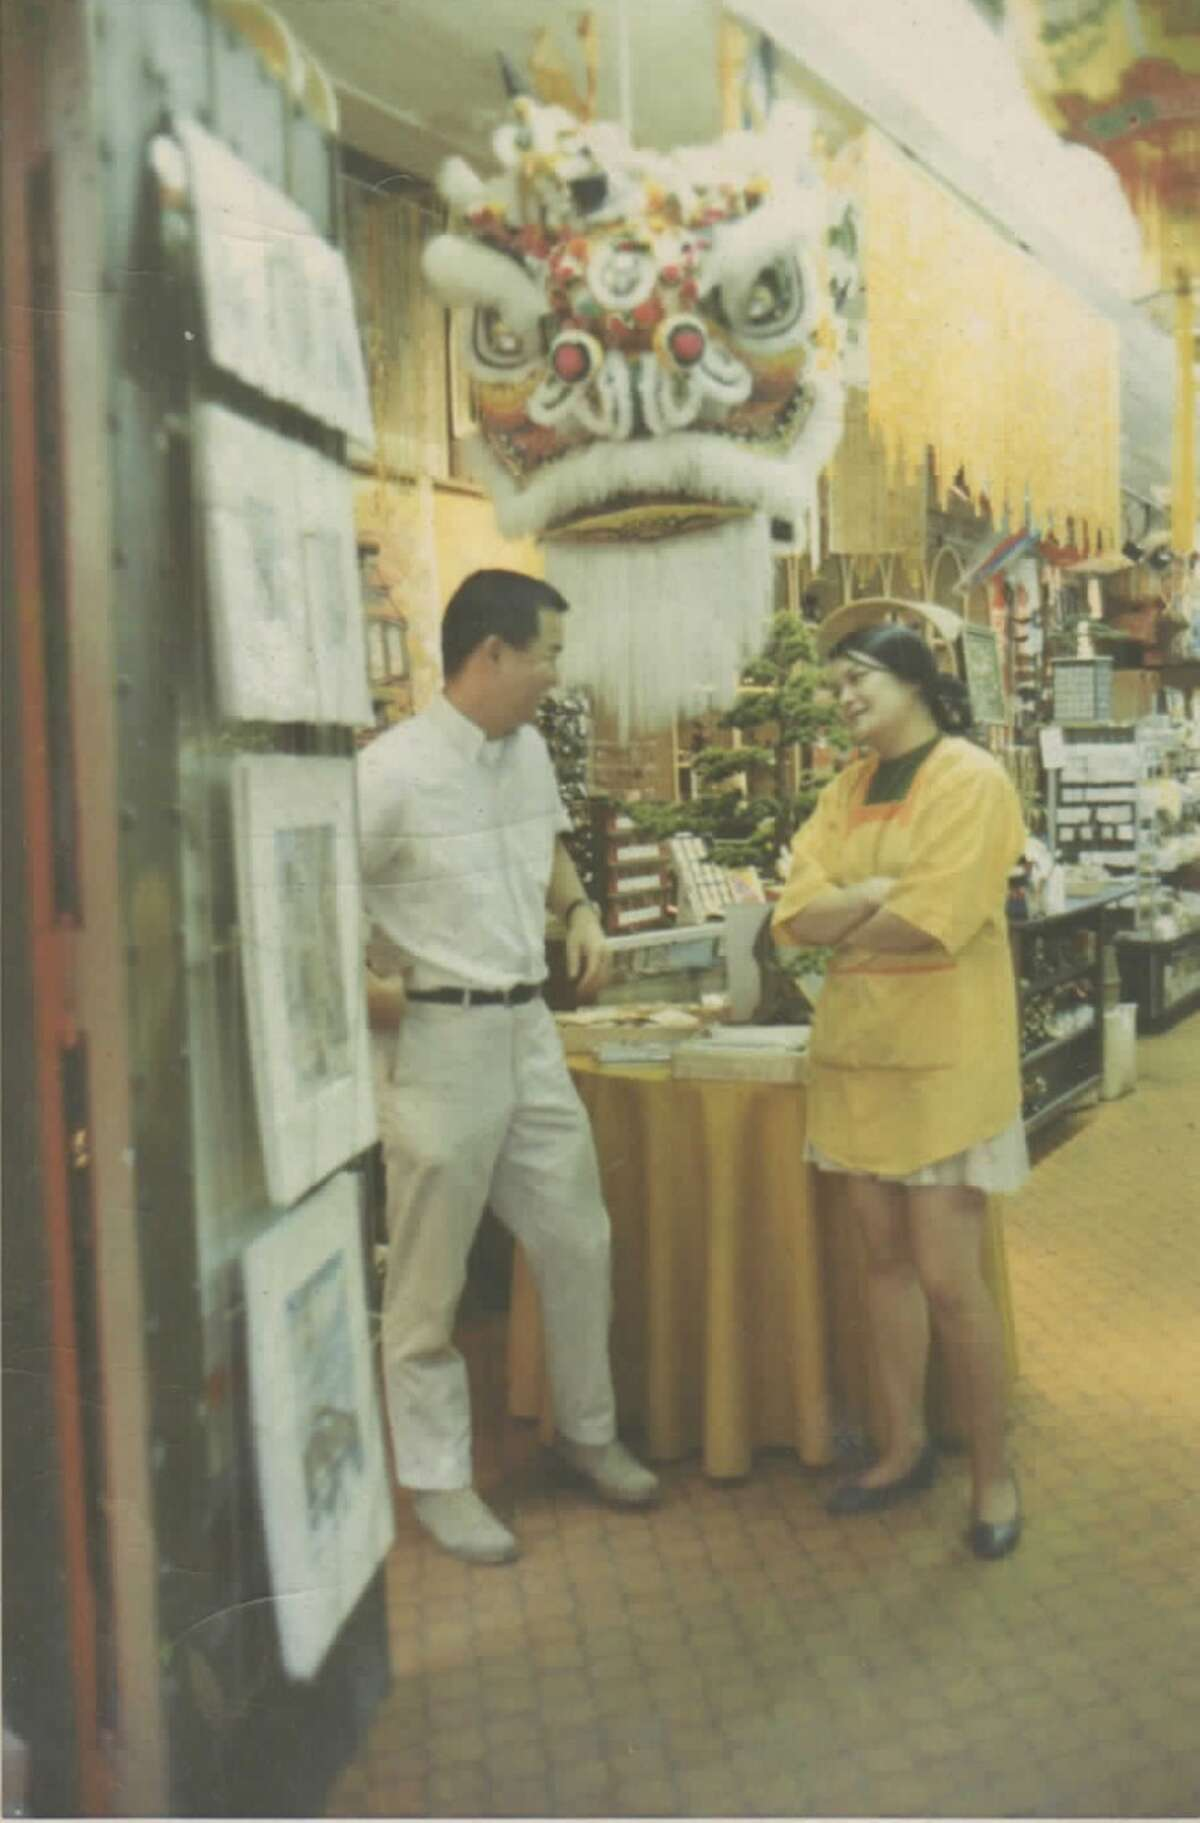 Tane Chan, right, with her husband, Al Chan, at their first Chinatown store, a gift shop called Yum Yum that opened in 1968.